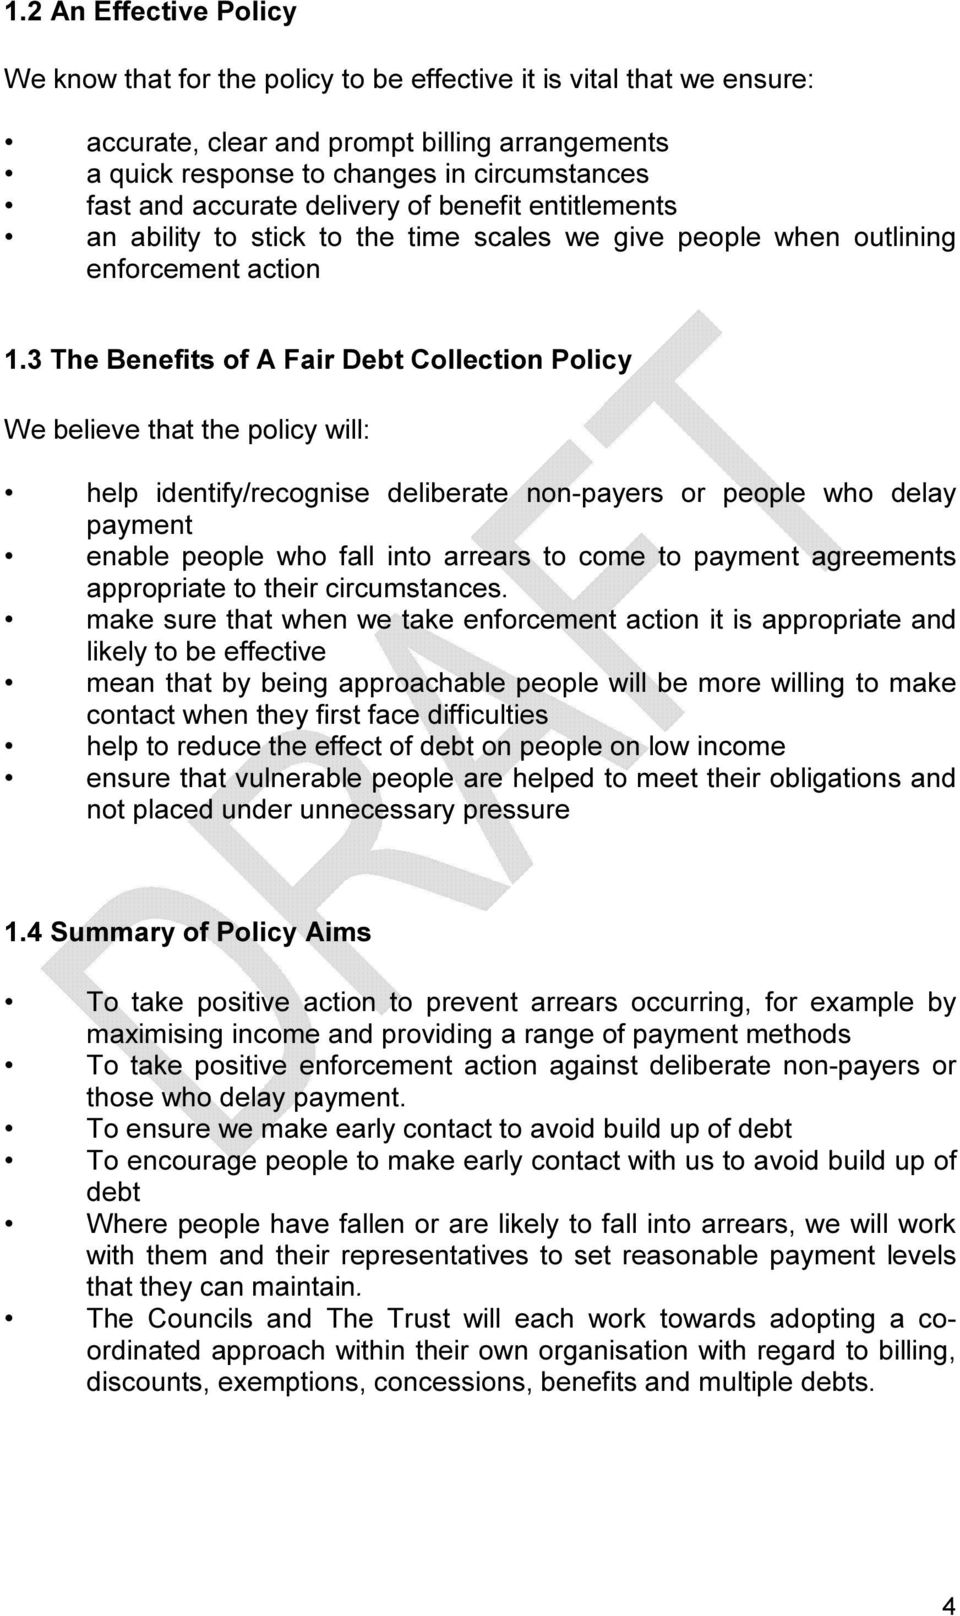 3 The Benefits of A Fair Debt Collection Policy We believe that the policy will: help identify/recognise deliberate non-payers or people who delay payment enable people who fall into arrears to come